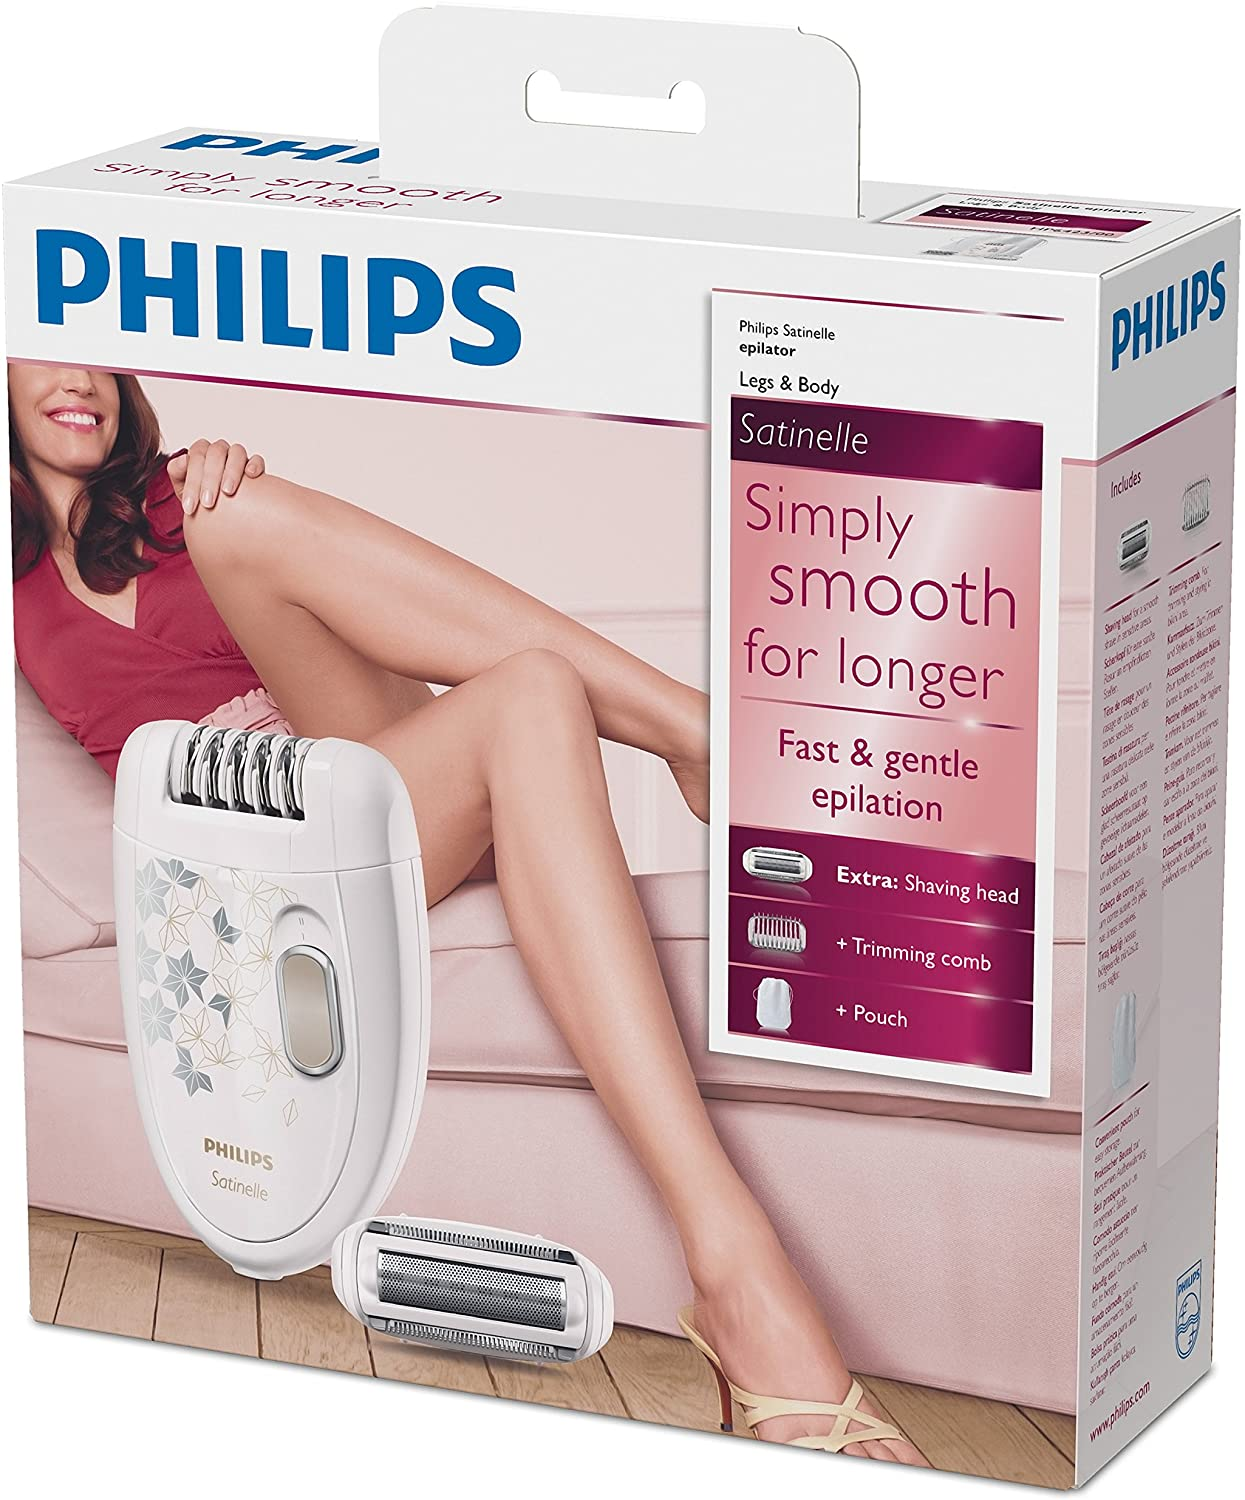 Philips Hp6423 / 00 - Satinelle Series Epilator With Shaving Head And Trimmer Comb Attachment, White enlarge